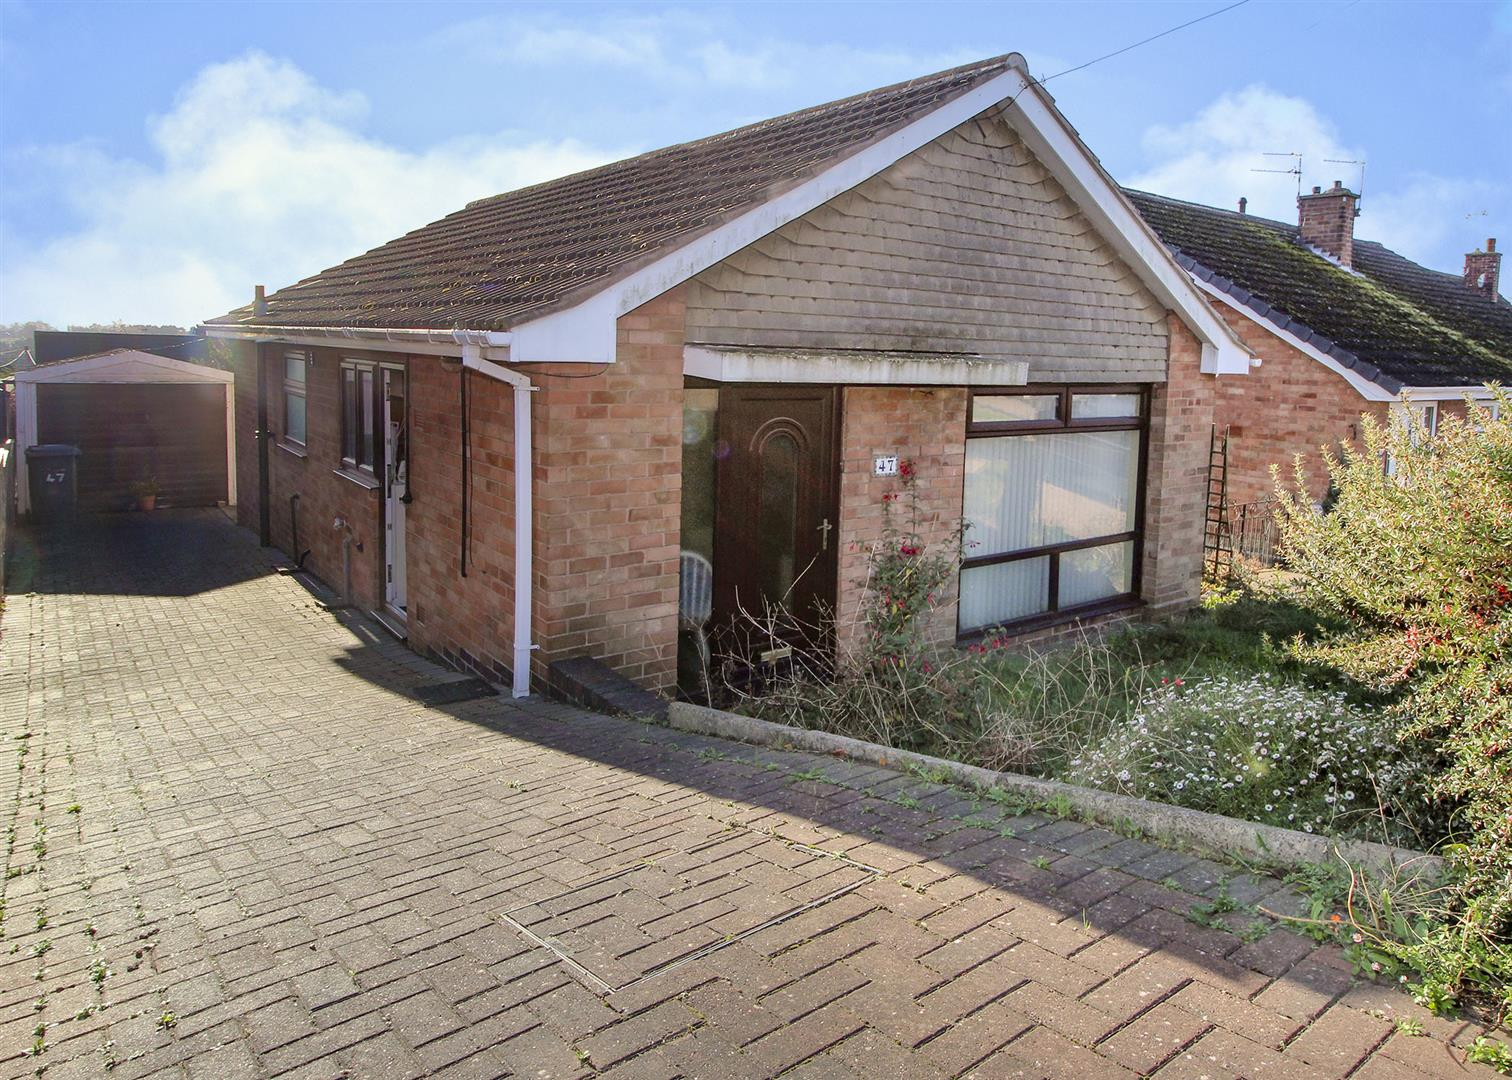 2 Bedrooms Detached Bungalow for sale in Sisley Avenue, Stapleford